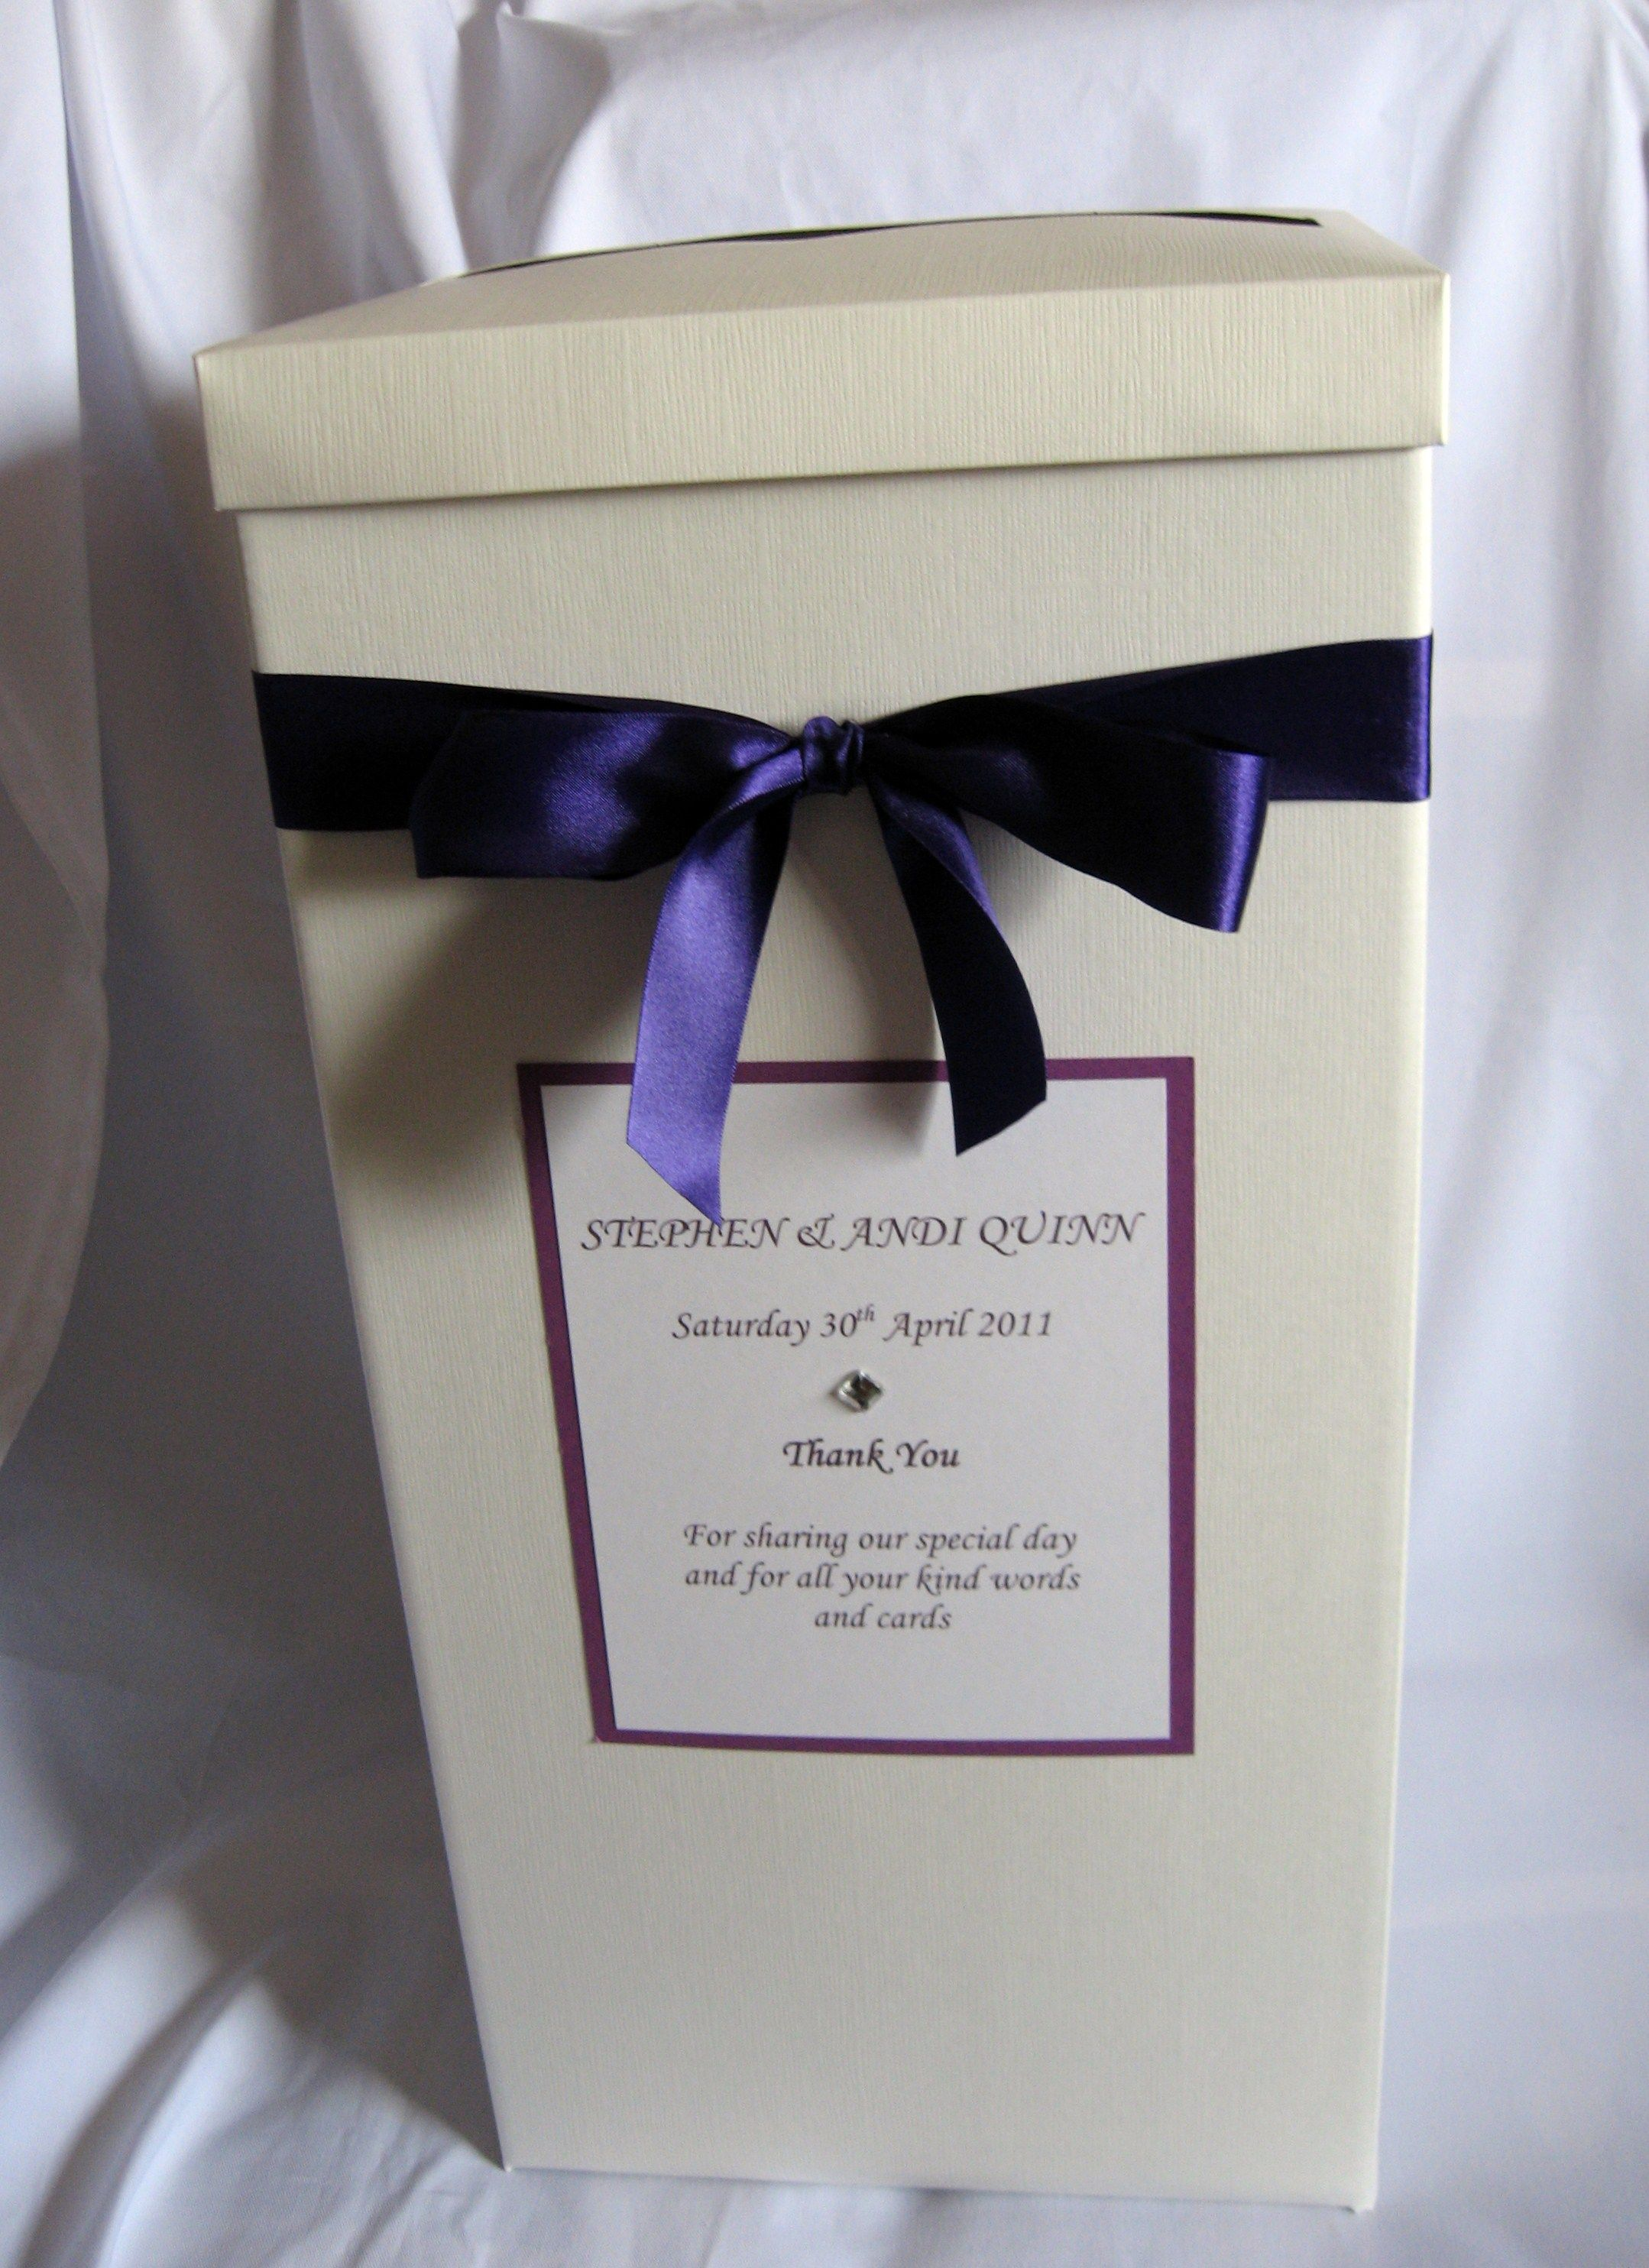 Cadbury Purple Wedding Card Post Box Wishing Well Available In Any Colour To Match